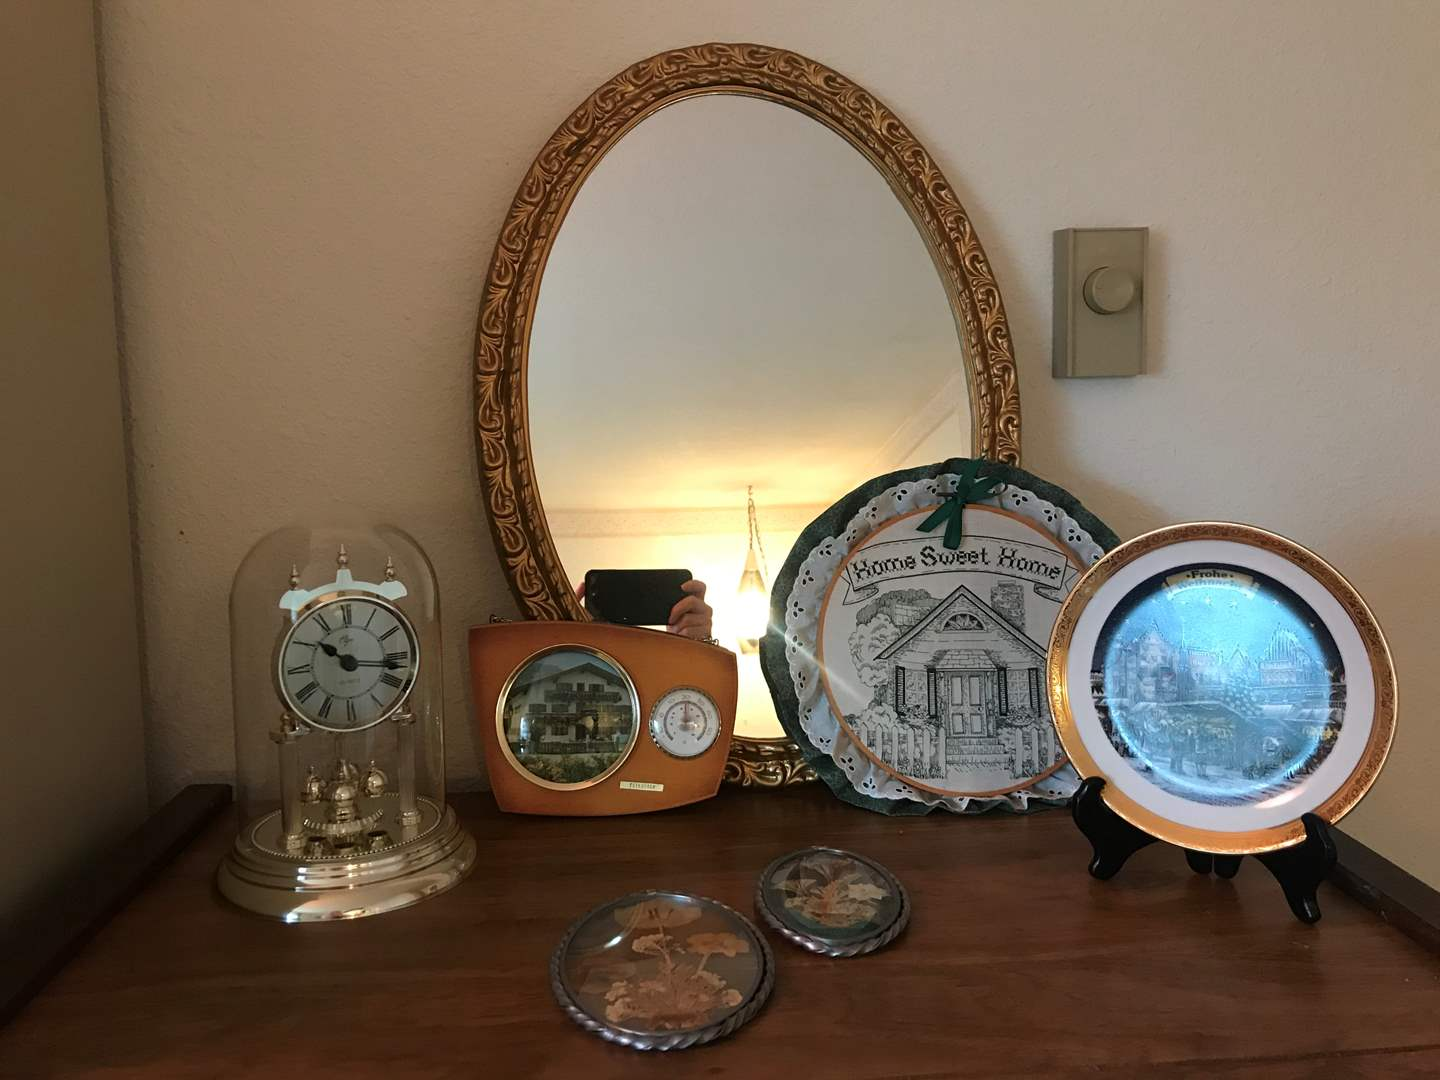 Lot # 114 - Wall Art, Vintage Elgin Anniversary Clock, Theo Kuhn 22K Gold Rimmed Plated Plate, German Thermometer & More. (main image)